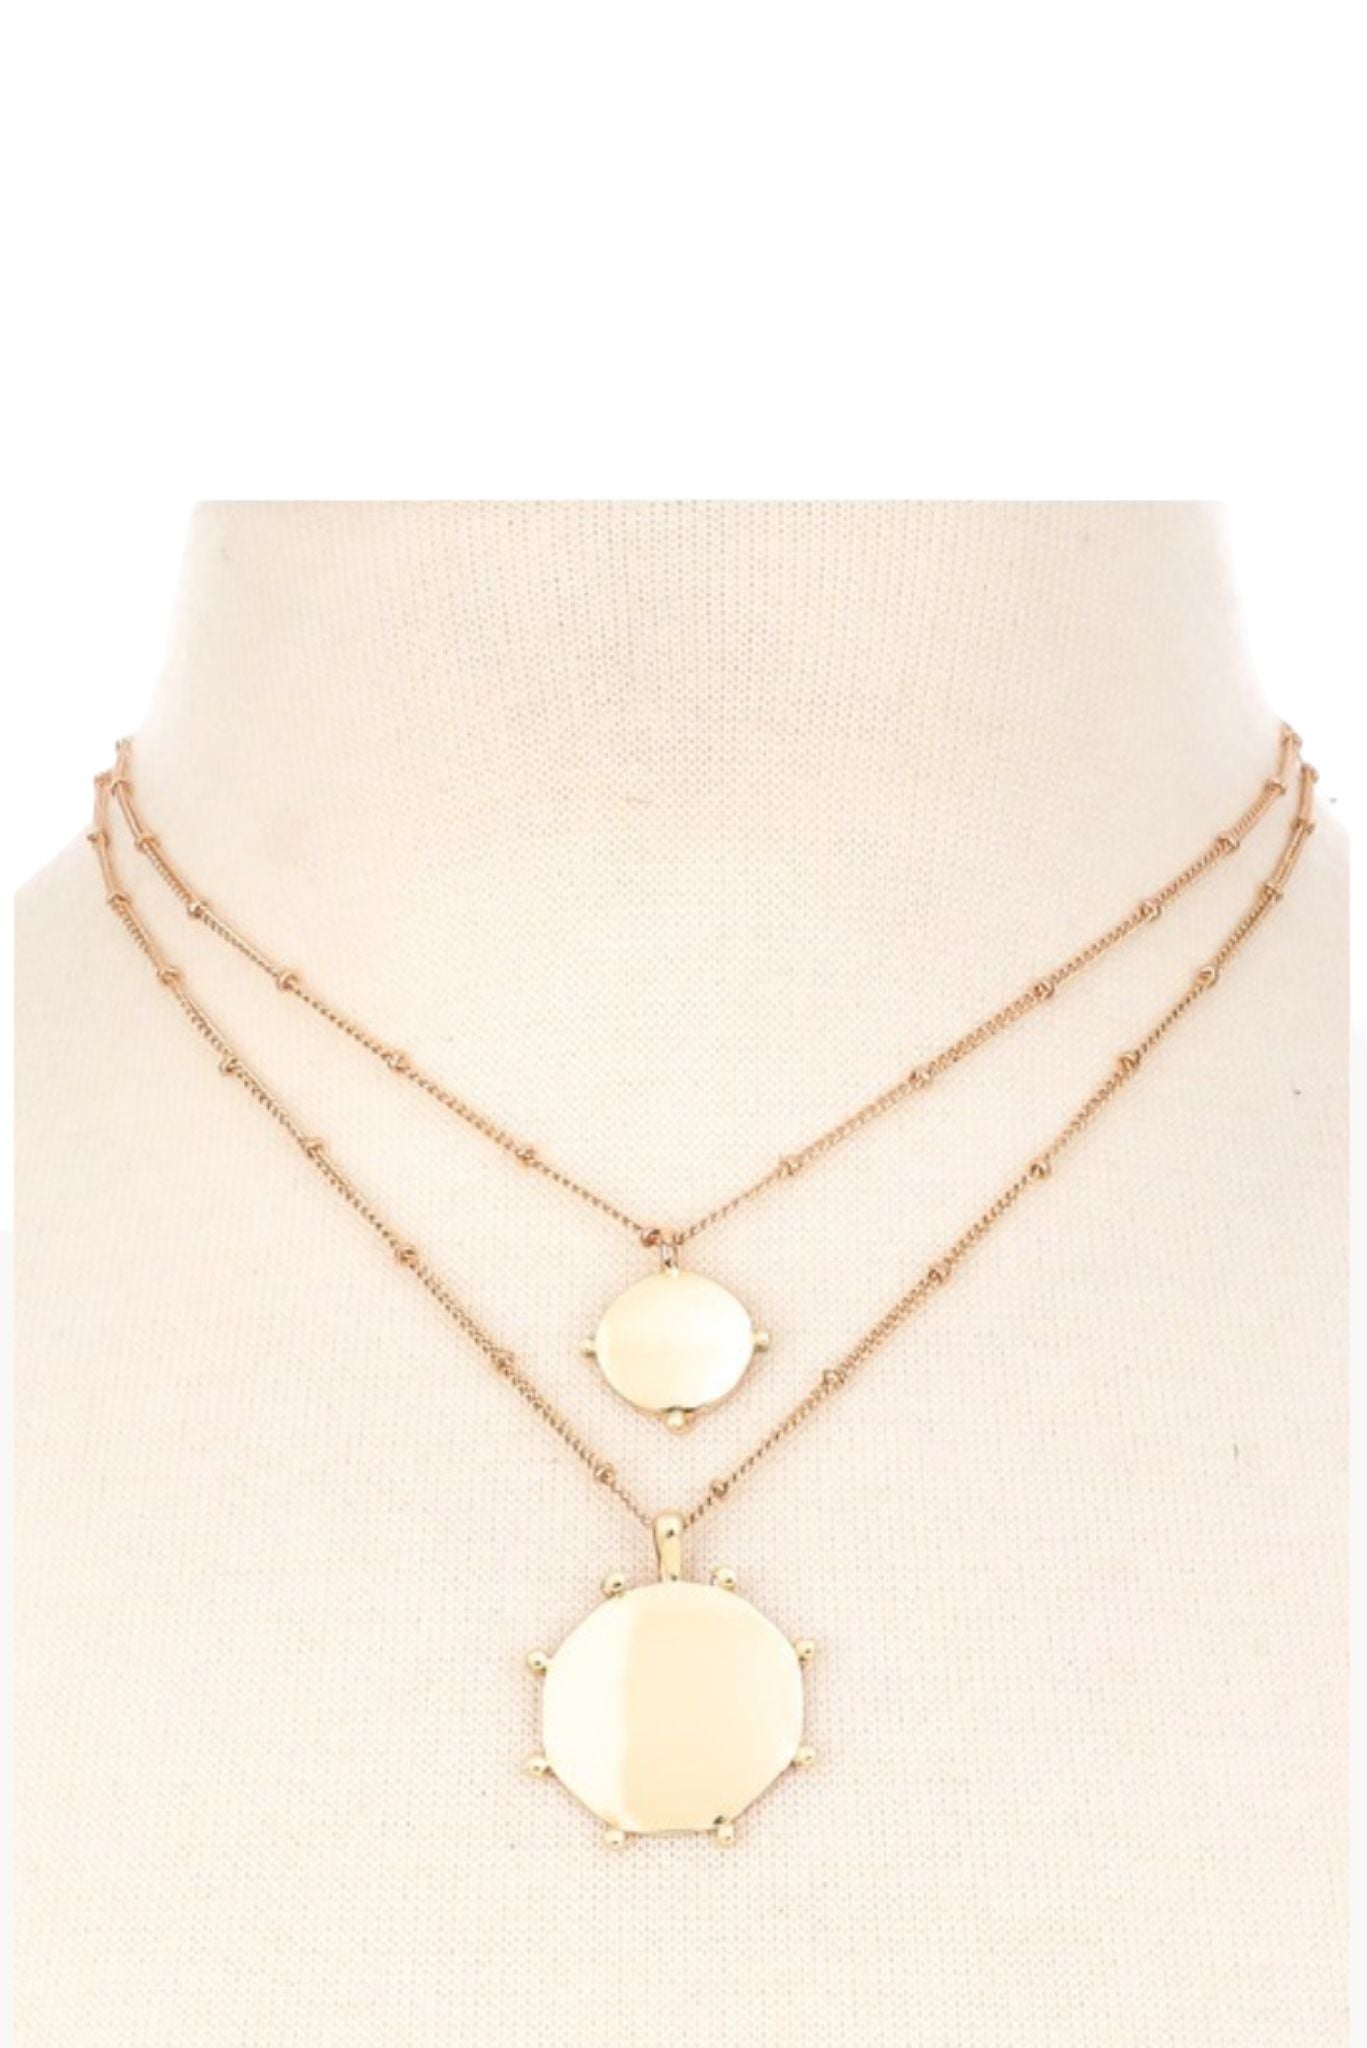 Gold Double Layer Necklace w/ Discs